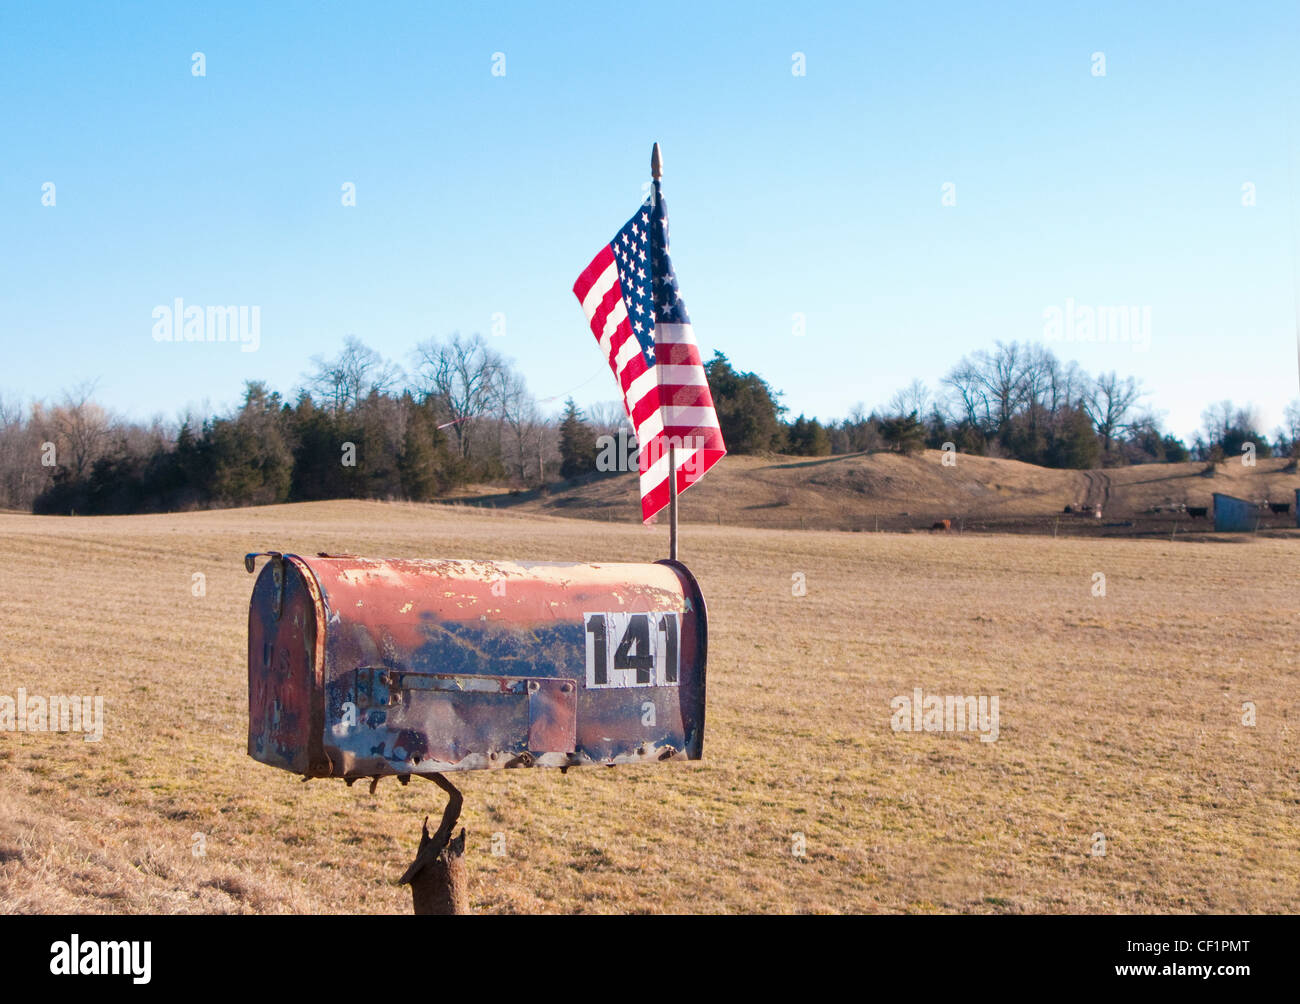 roadside rural mailbox with American flag - Stock Image